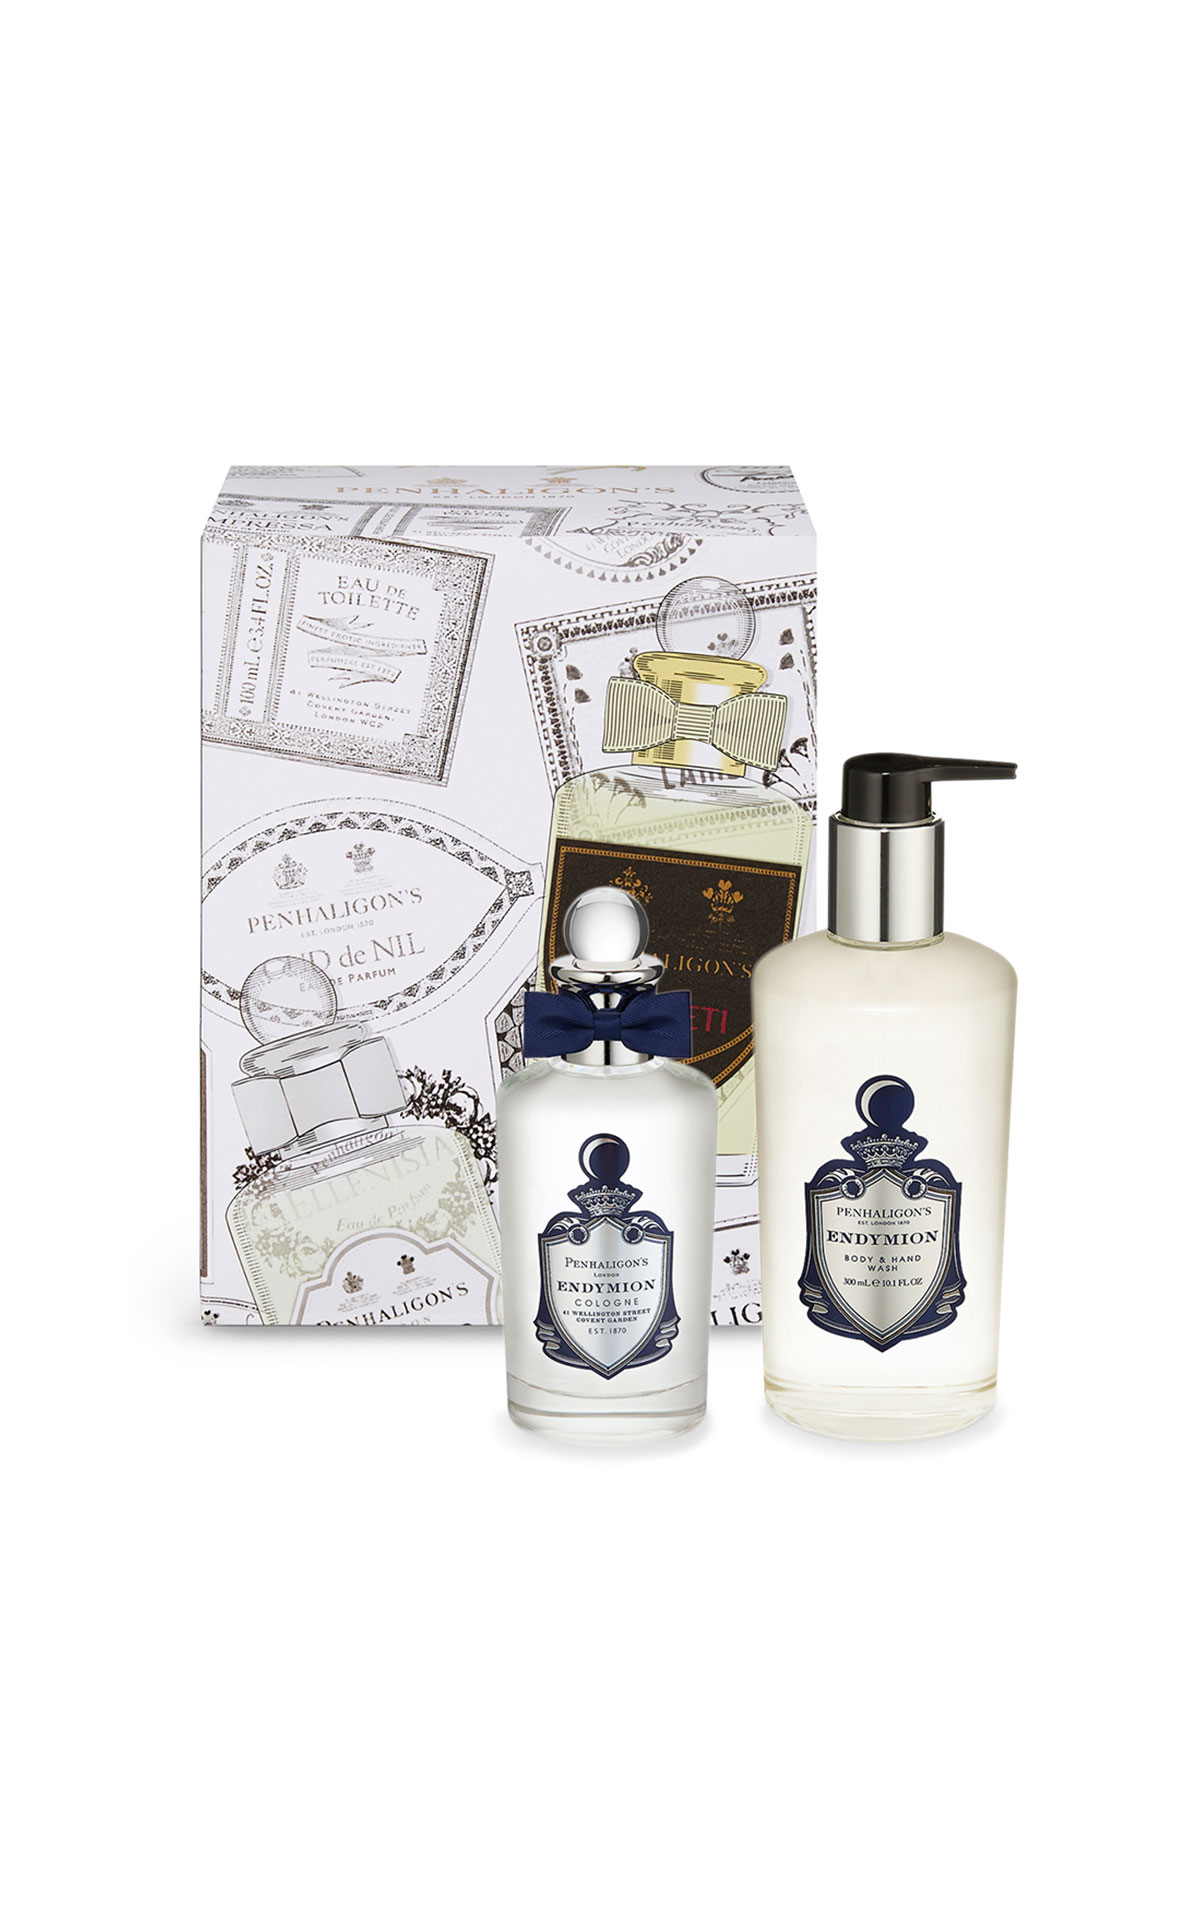 Penhaligon's Endymion 100ml unboxed and Endymion body & hand wash from Bicester Village